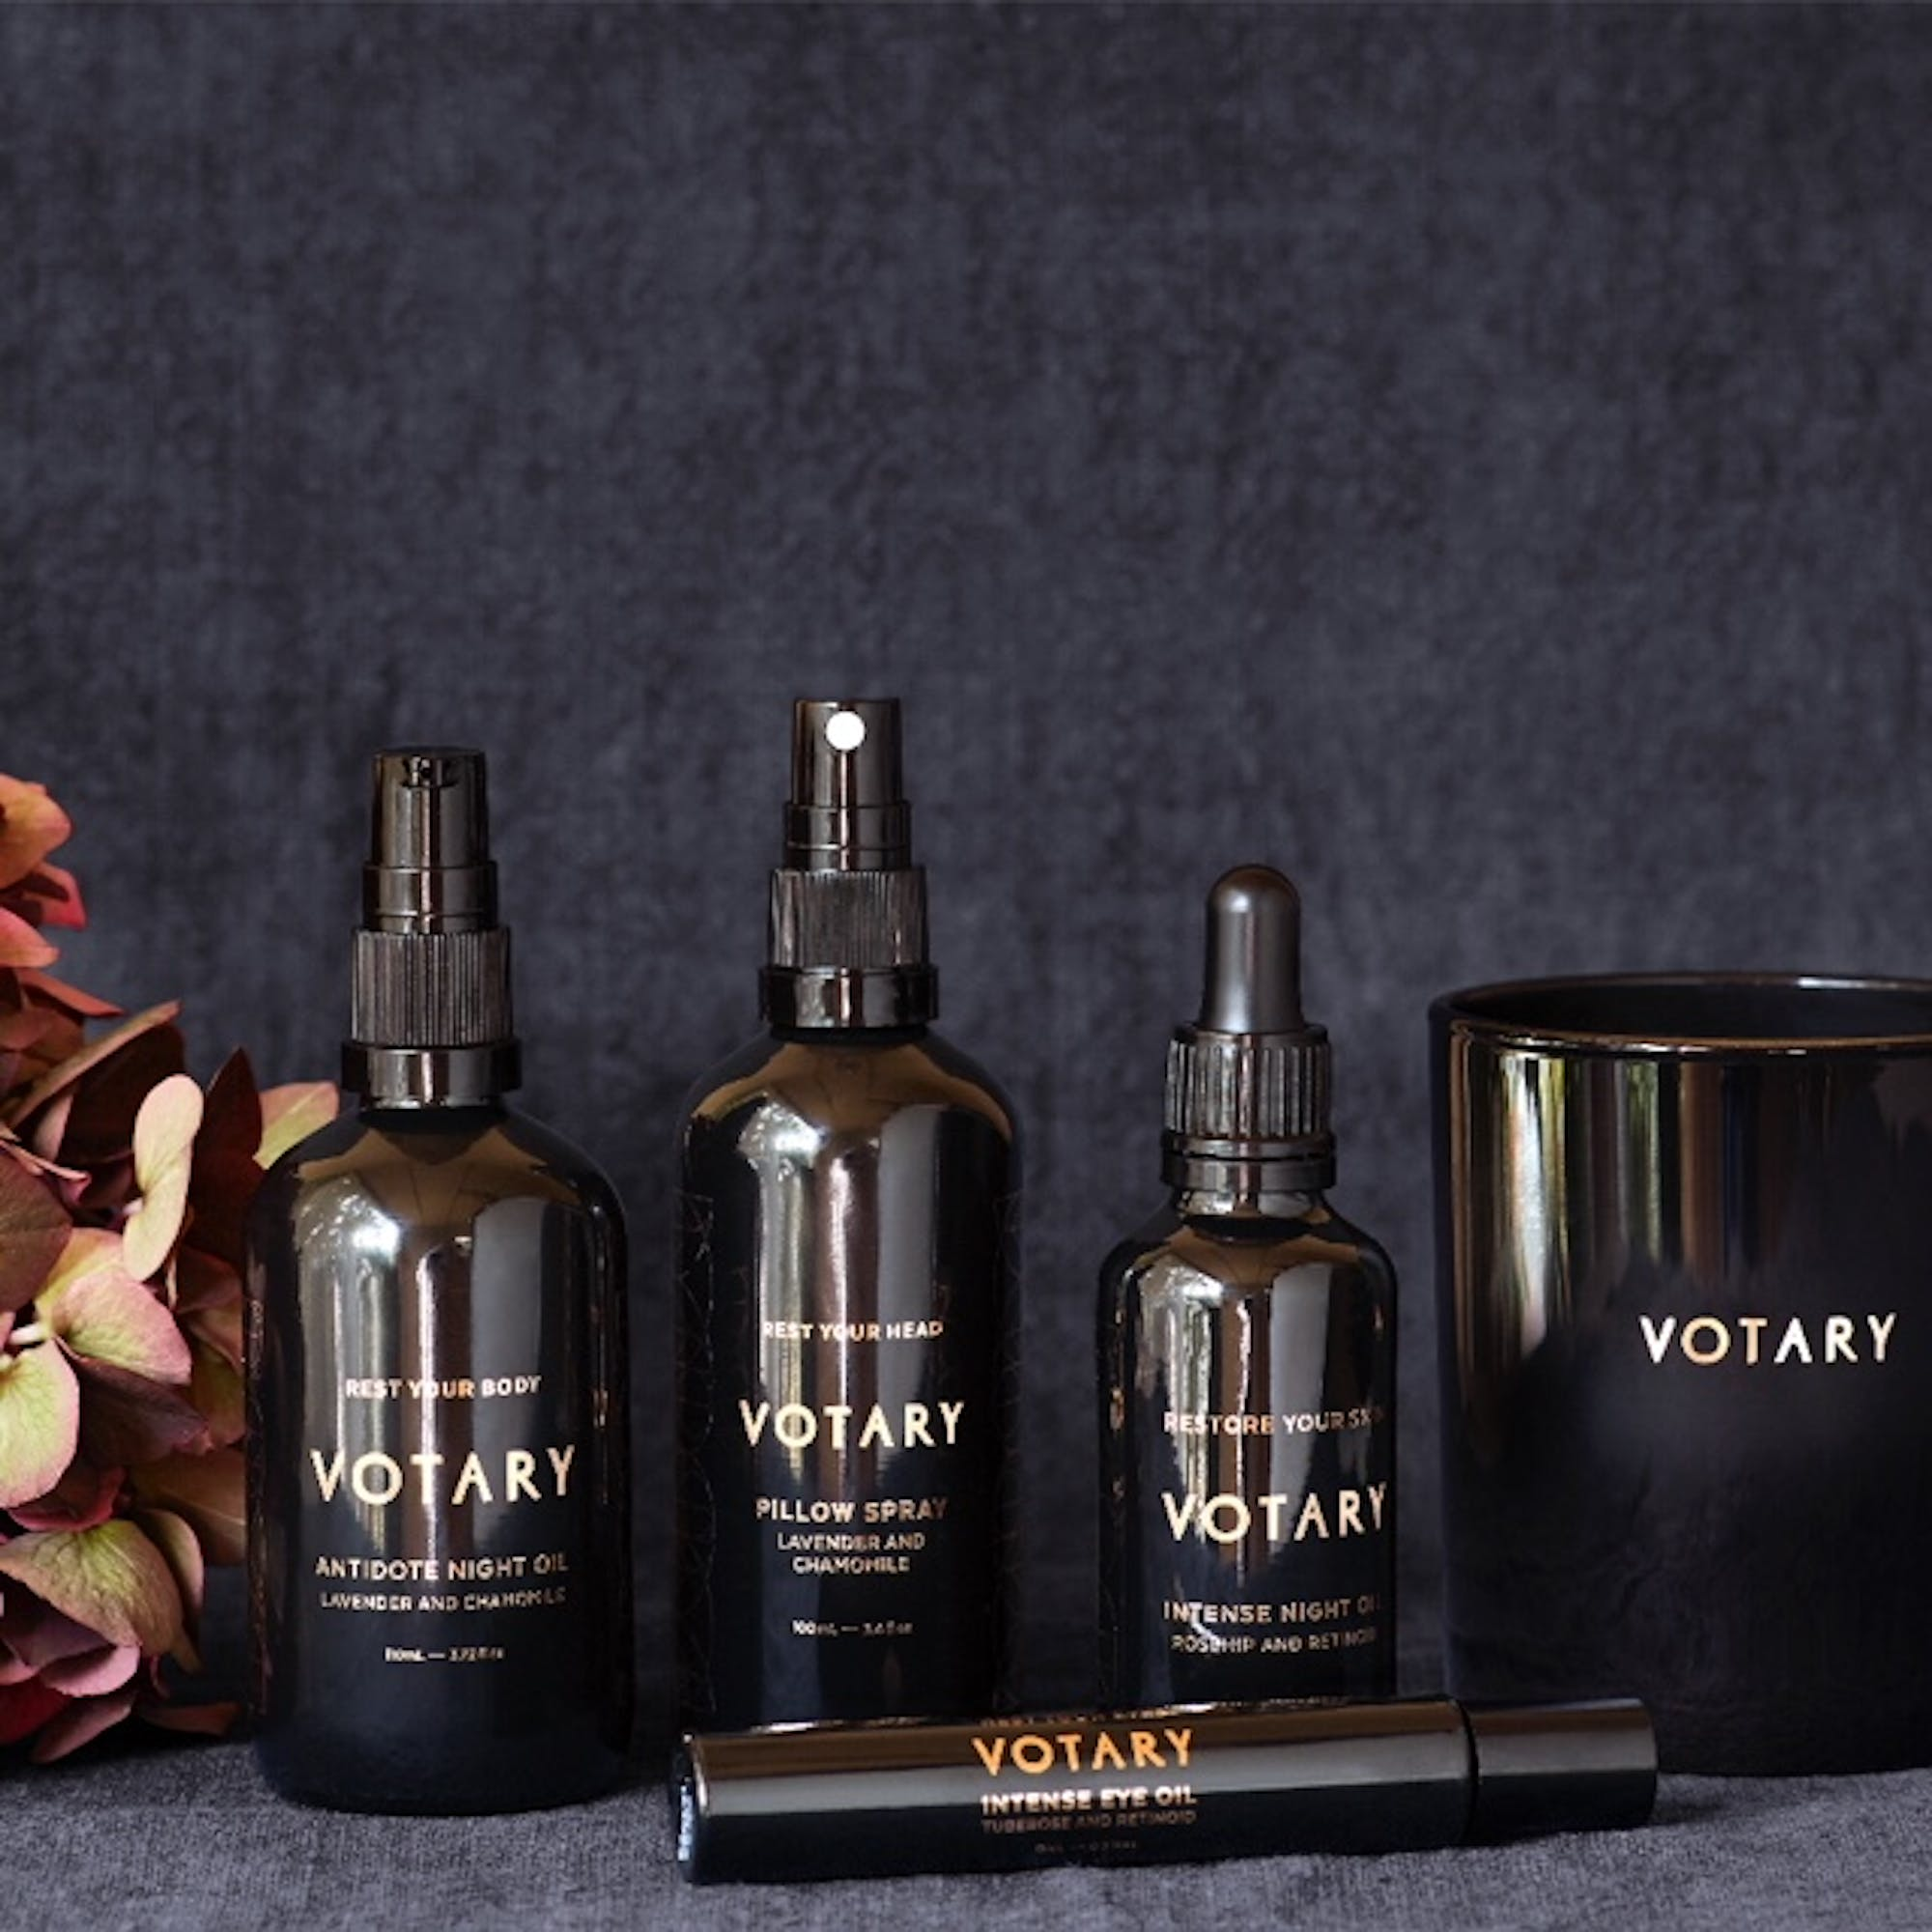 The Walpole Daily Practice  Sleep rituals with Votary